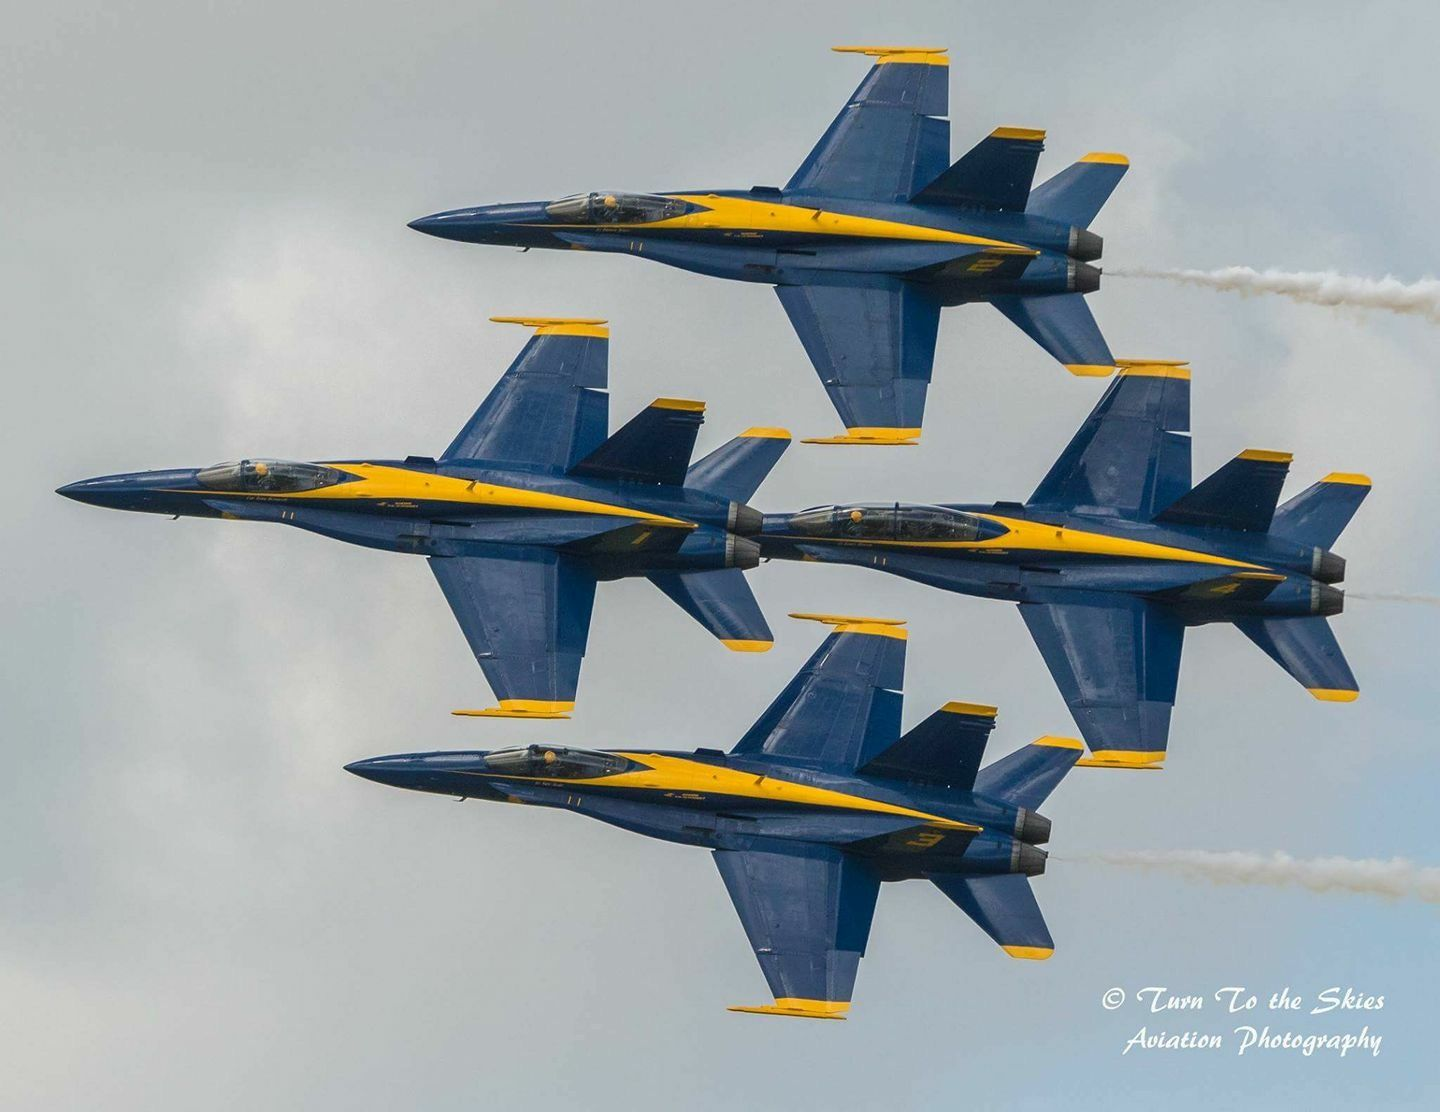 Pin by Kristen US on Blue Angels Awesome! Us navy